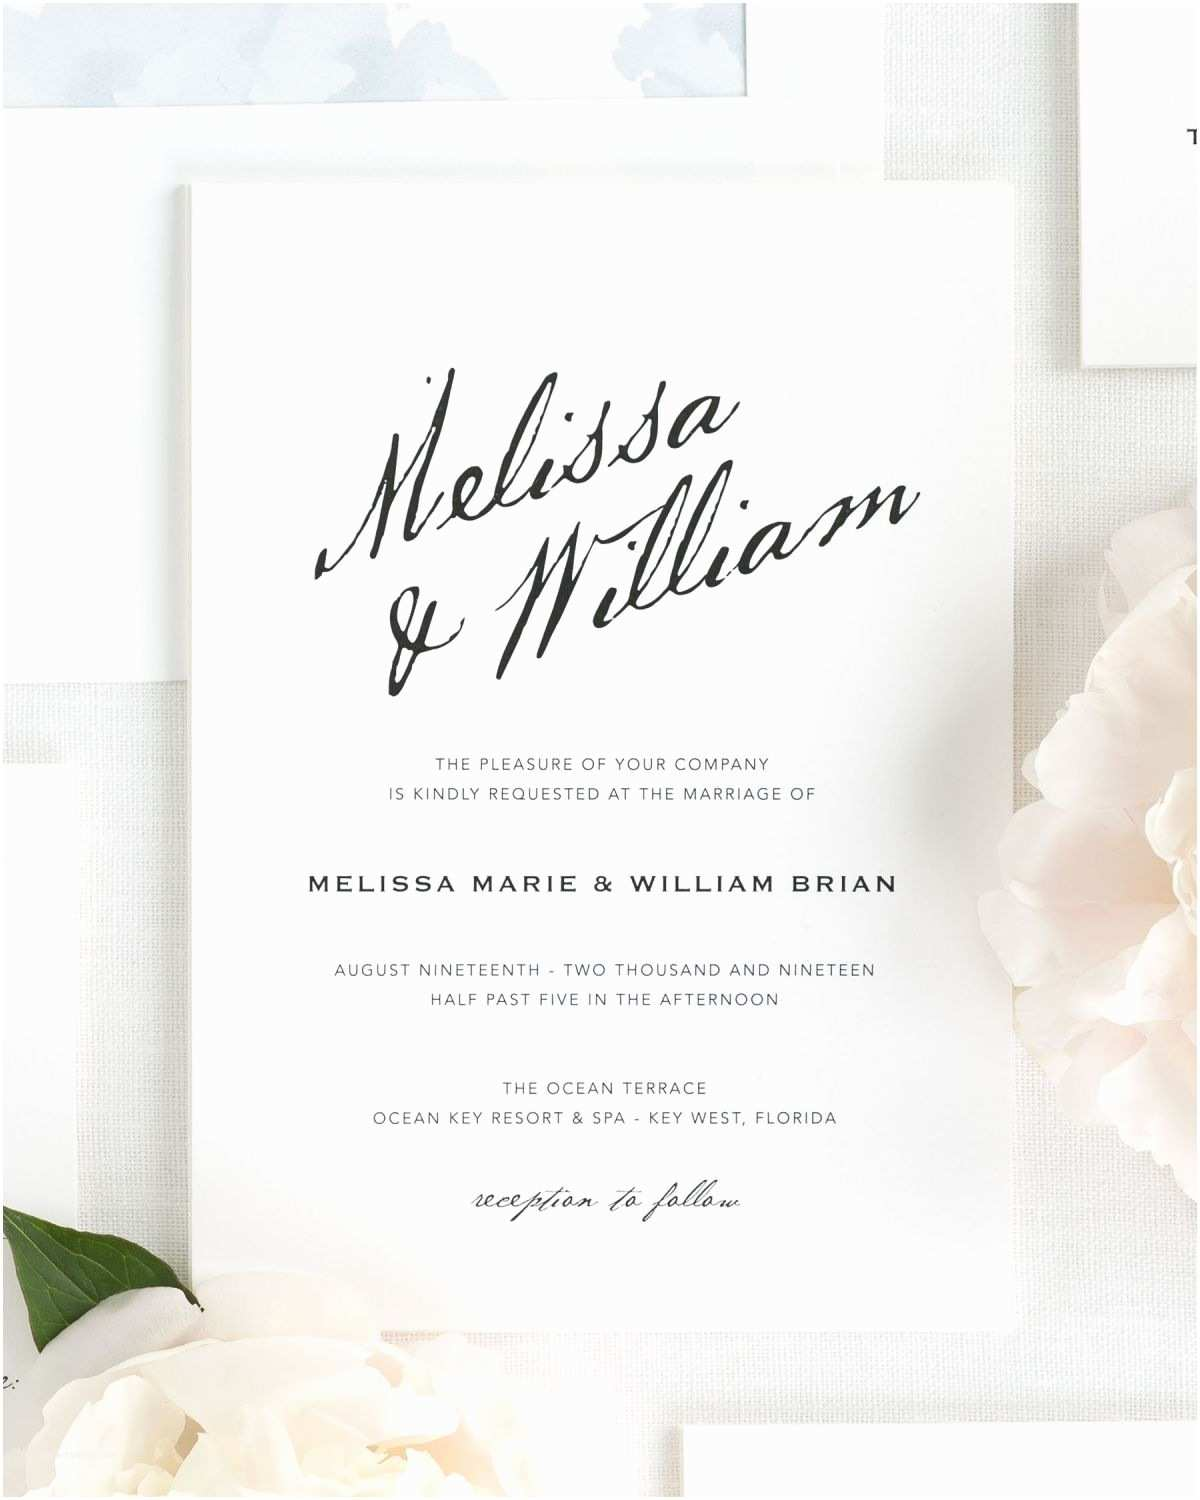 Calligraphy for Wedding Invitations Modern Calligraphy Wedding Invitations Wedding